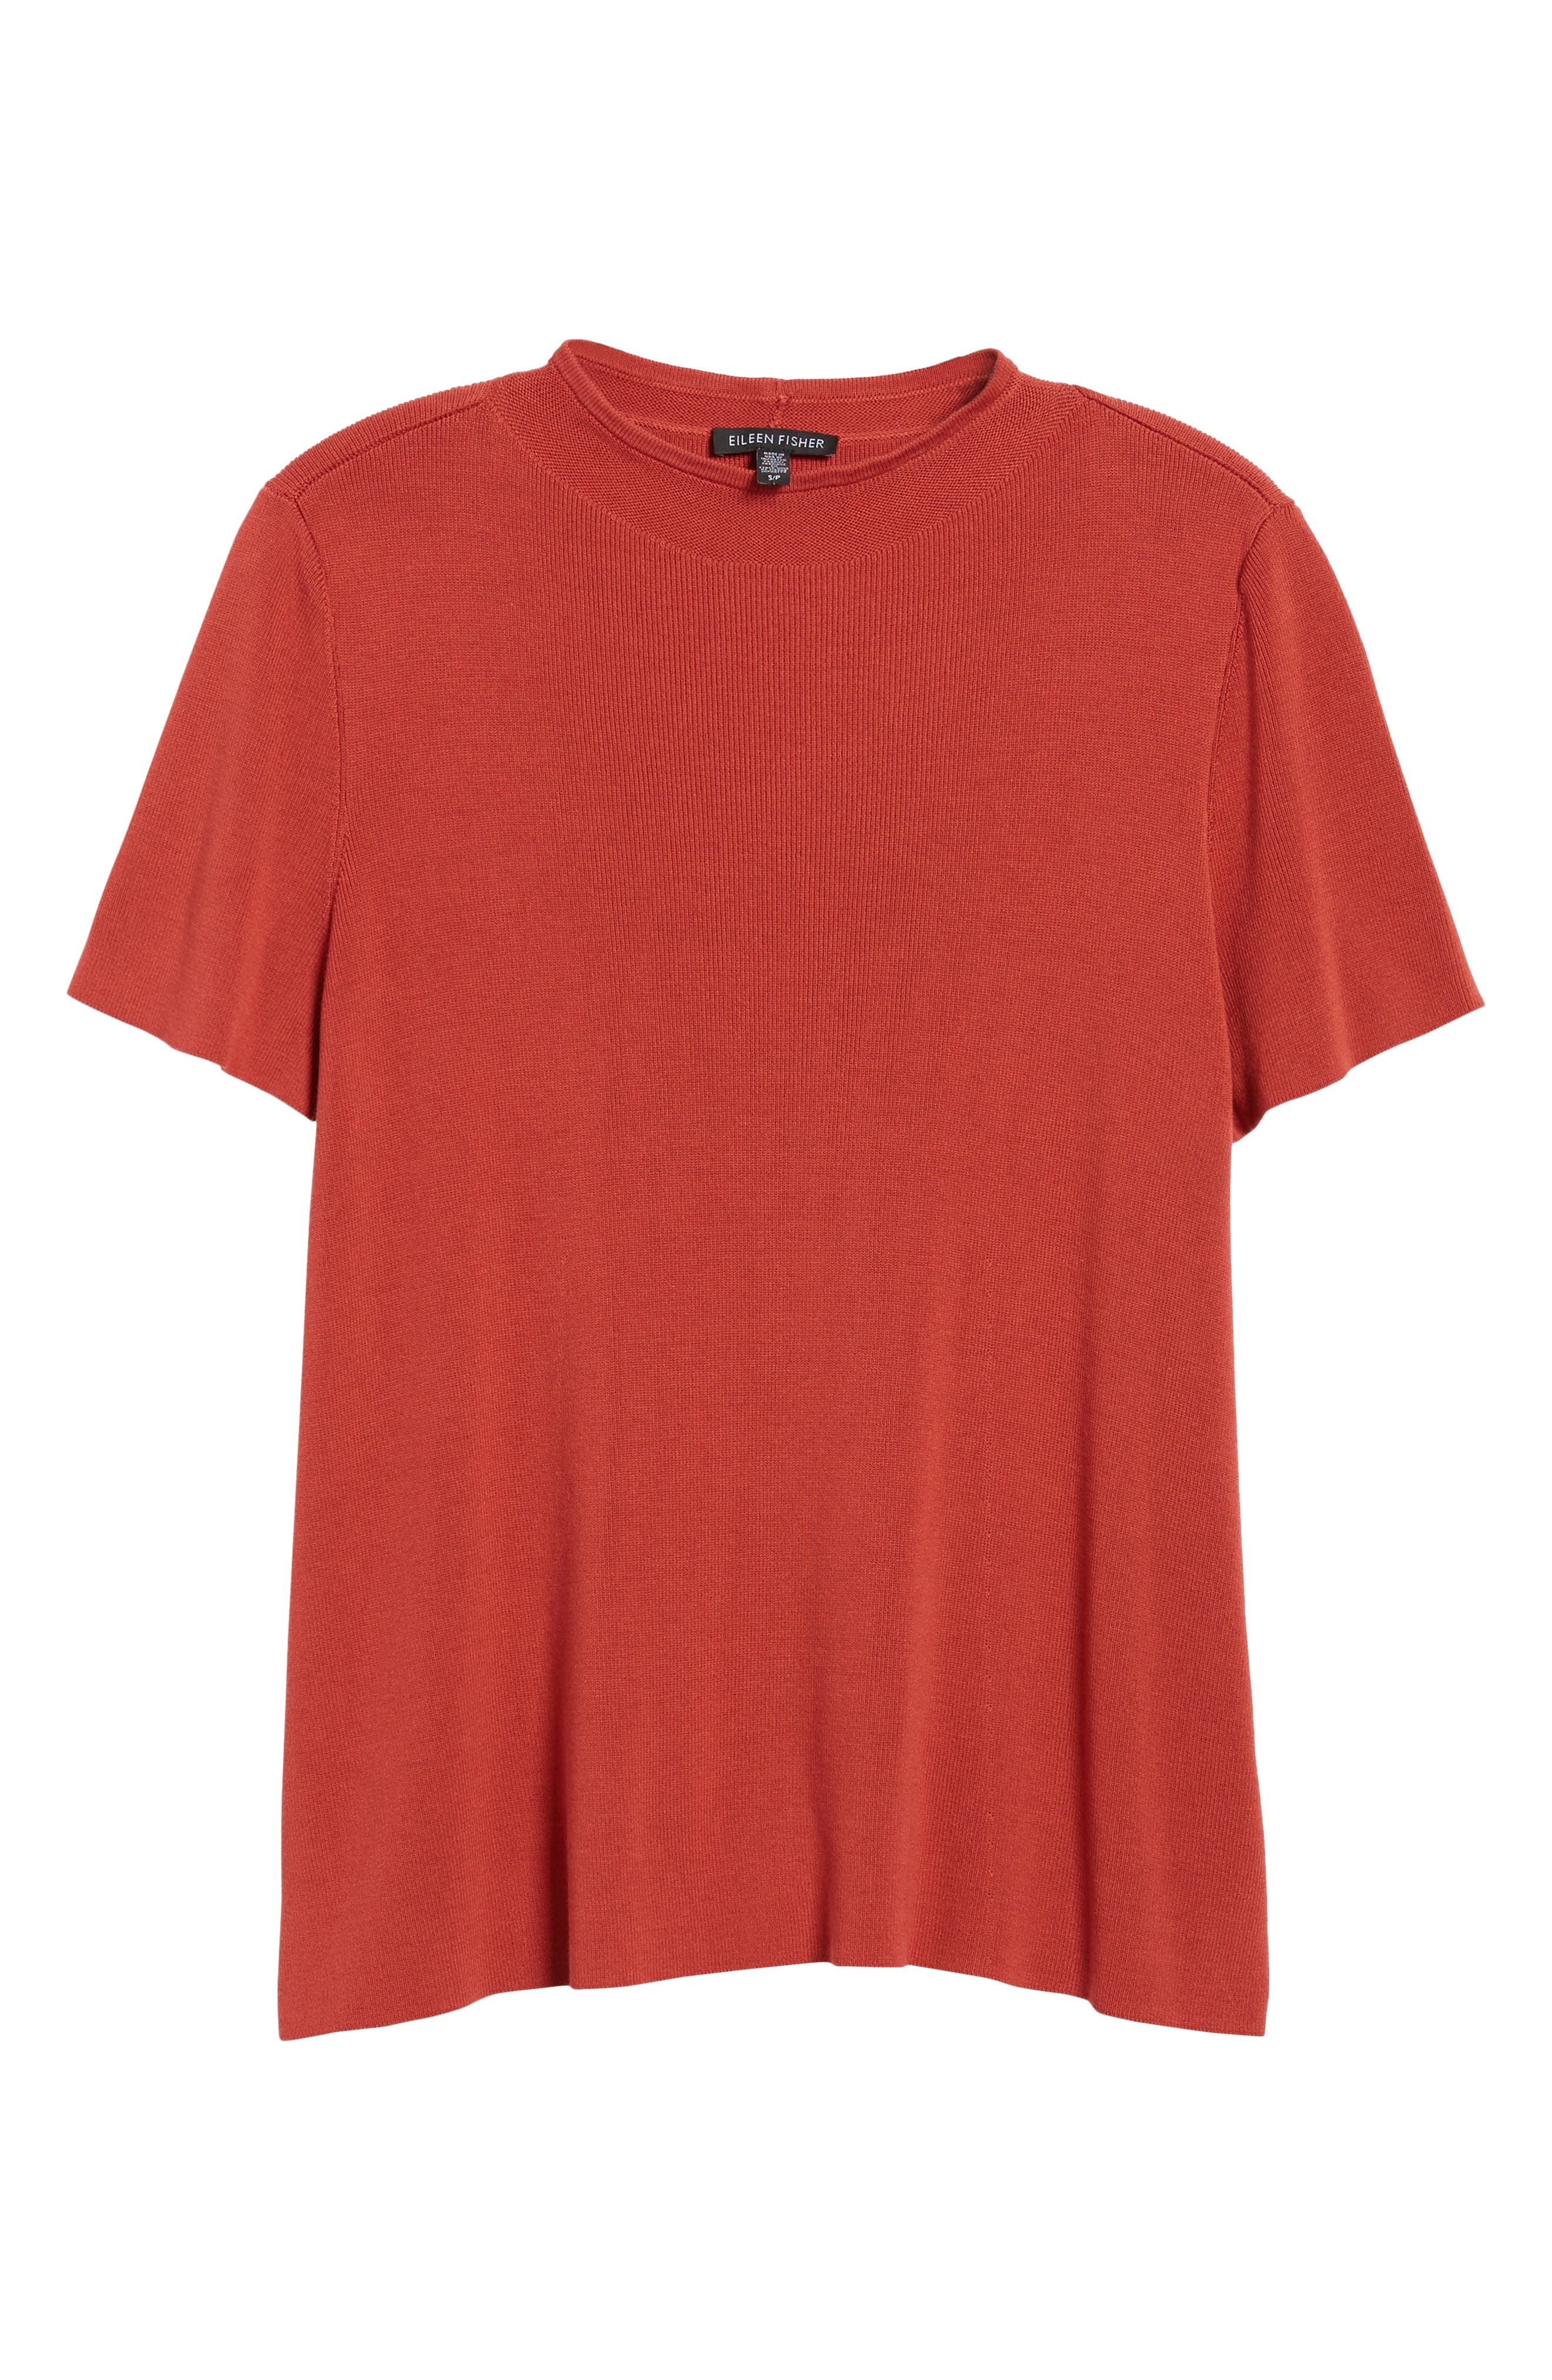 Tencel<sup>®</sup> Lyocell Knit Sweater,                             Alternate thumbnail 6, color,                             Coral Rose